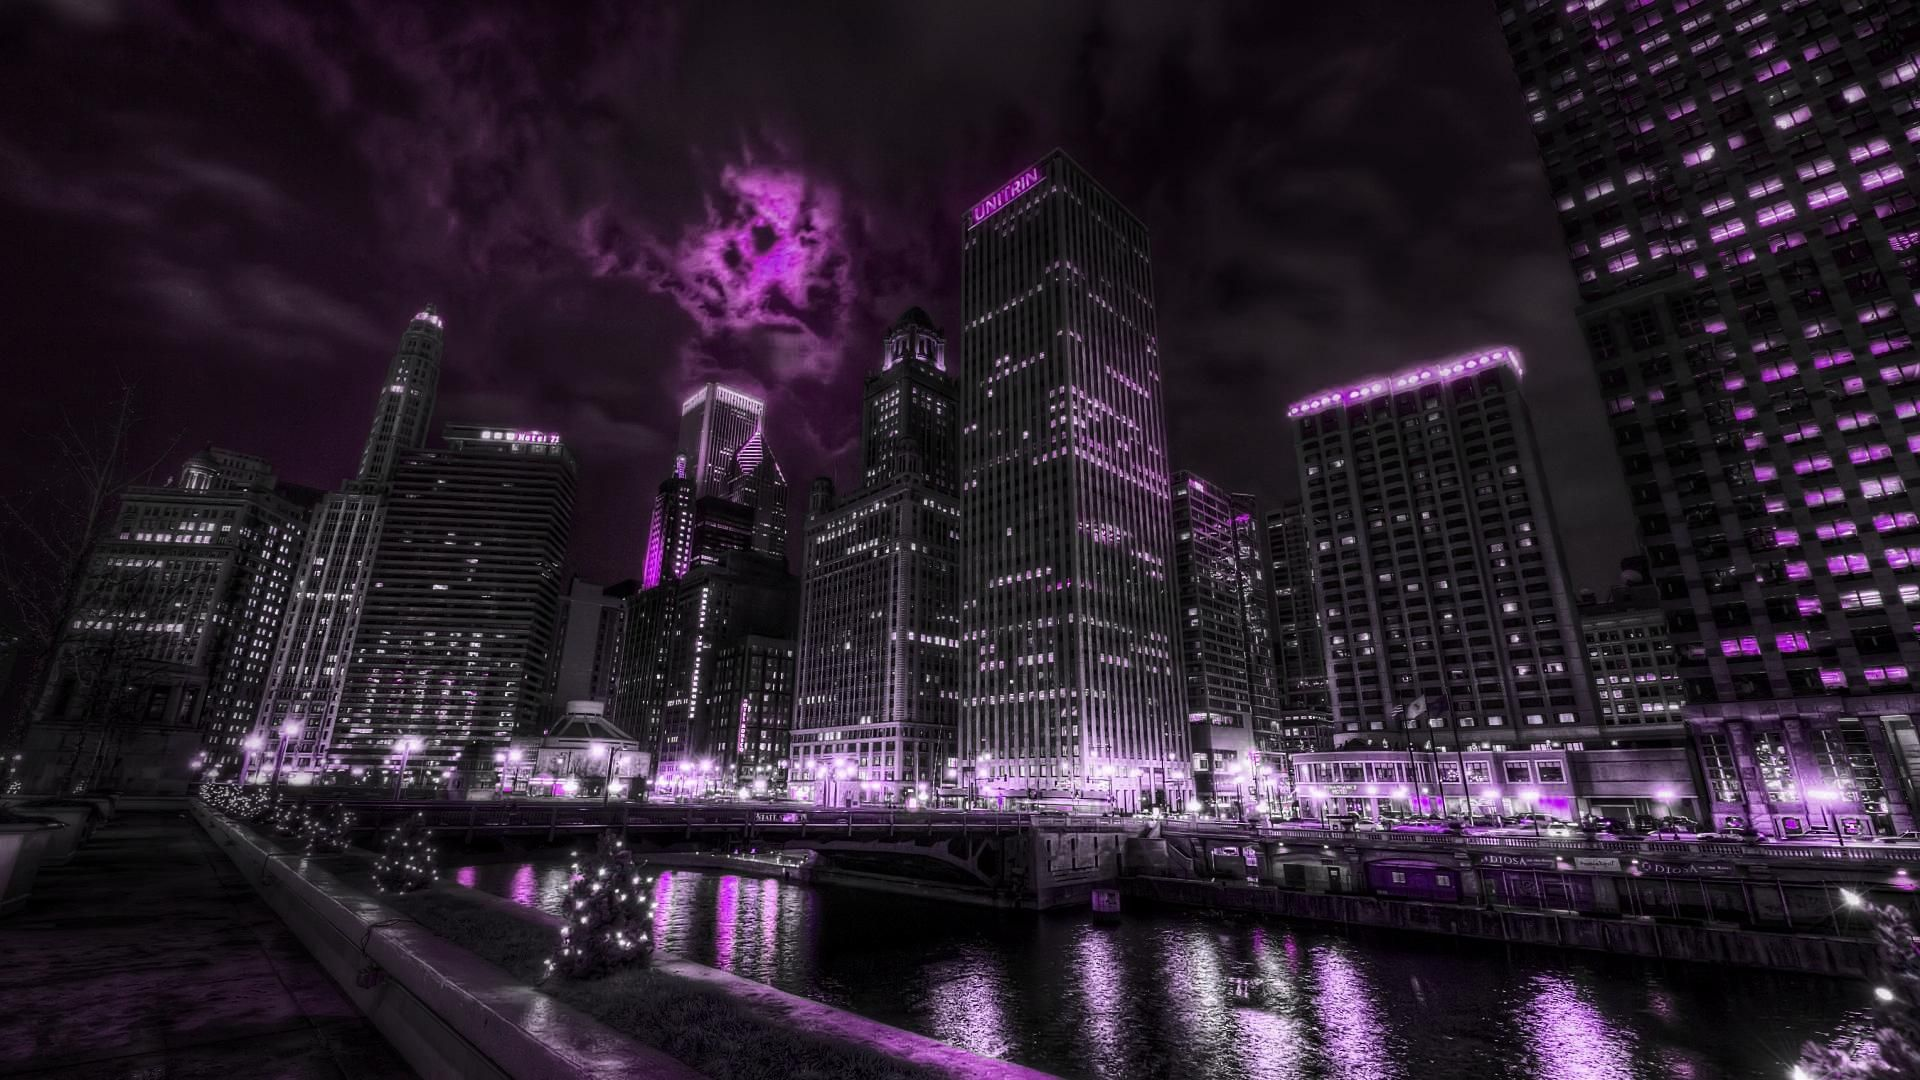 Wallpaper 20 From Saints Row IV